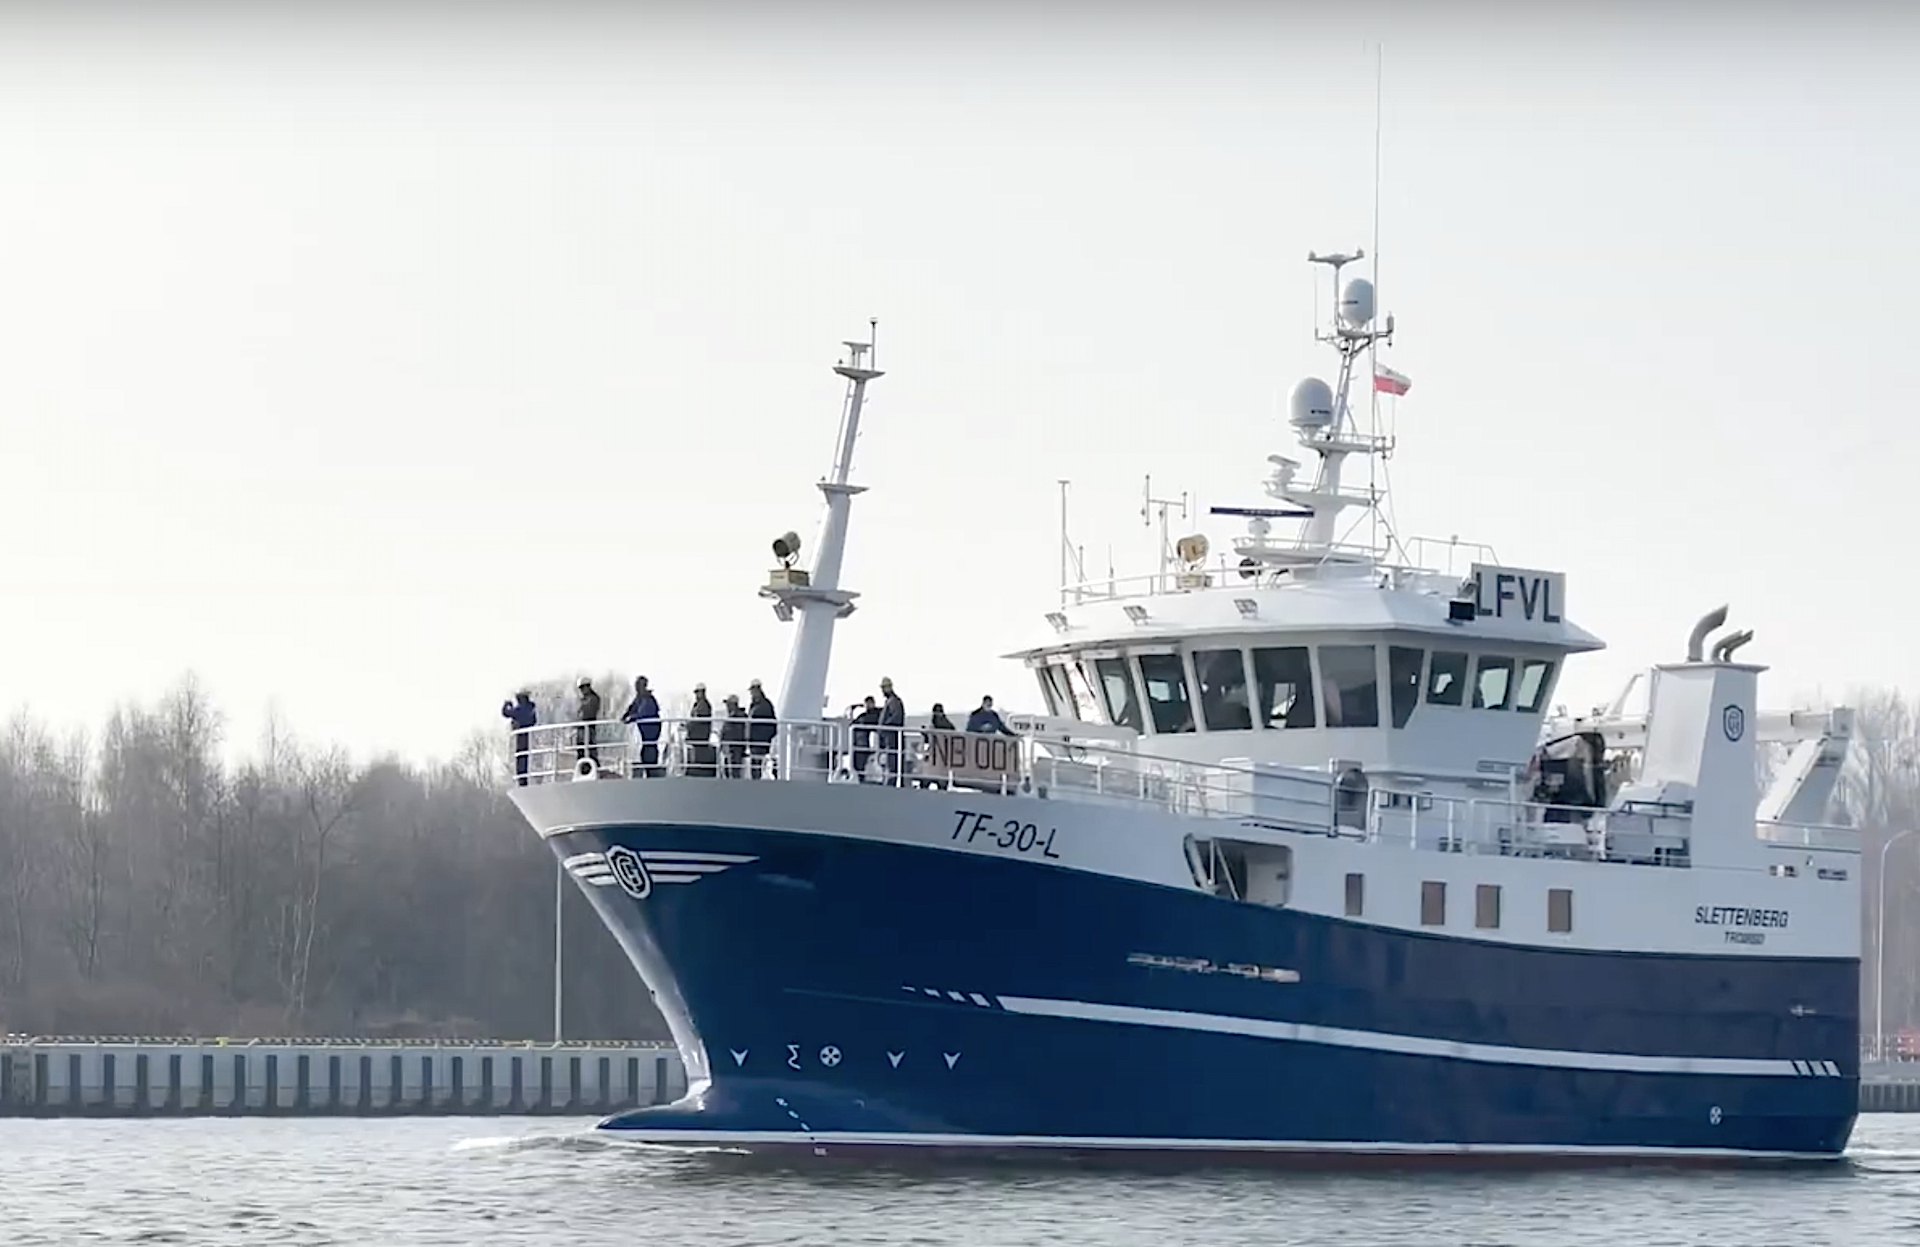 Fully equipped vessel built at Safe shipyard in Gdańsk started sea trials [video]